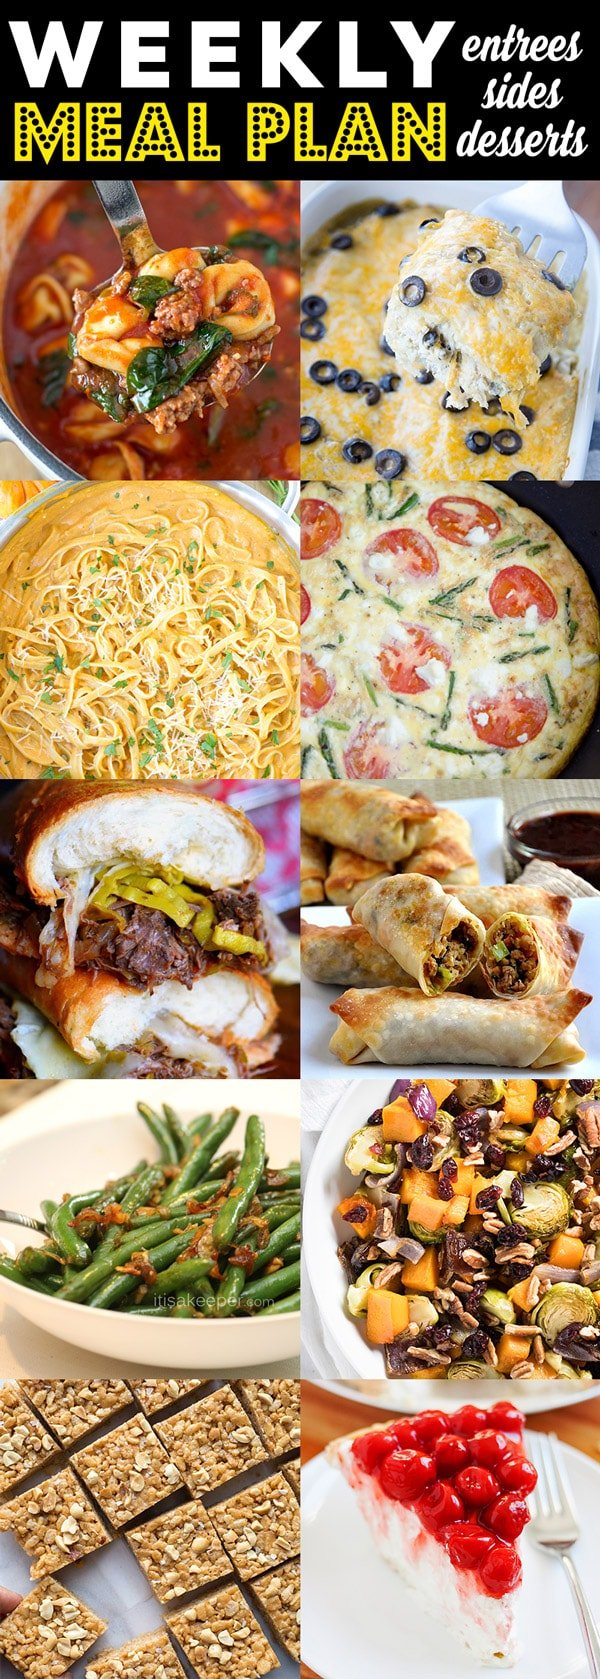 Weekly Meal Plan   Menu Planning   Weeknight Dinners, side dishes and desserts